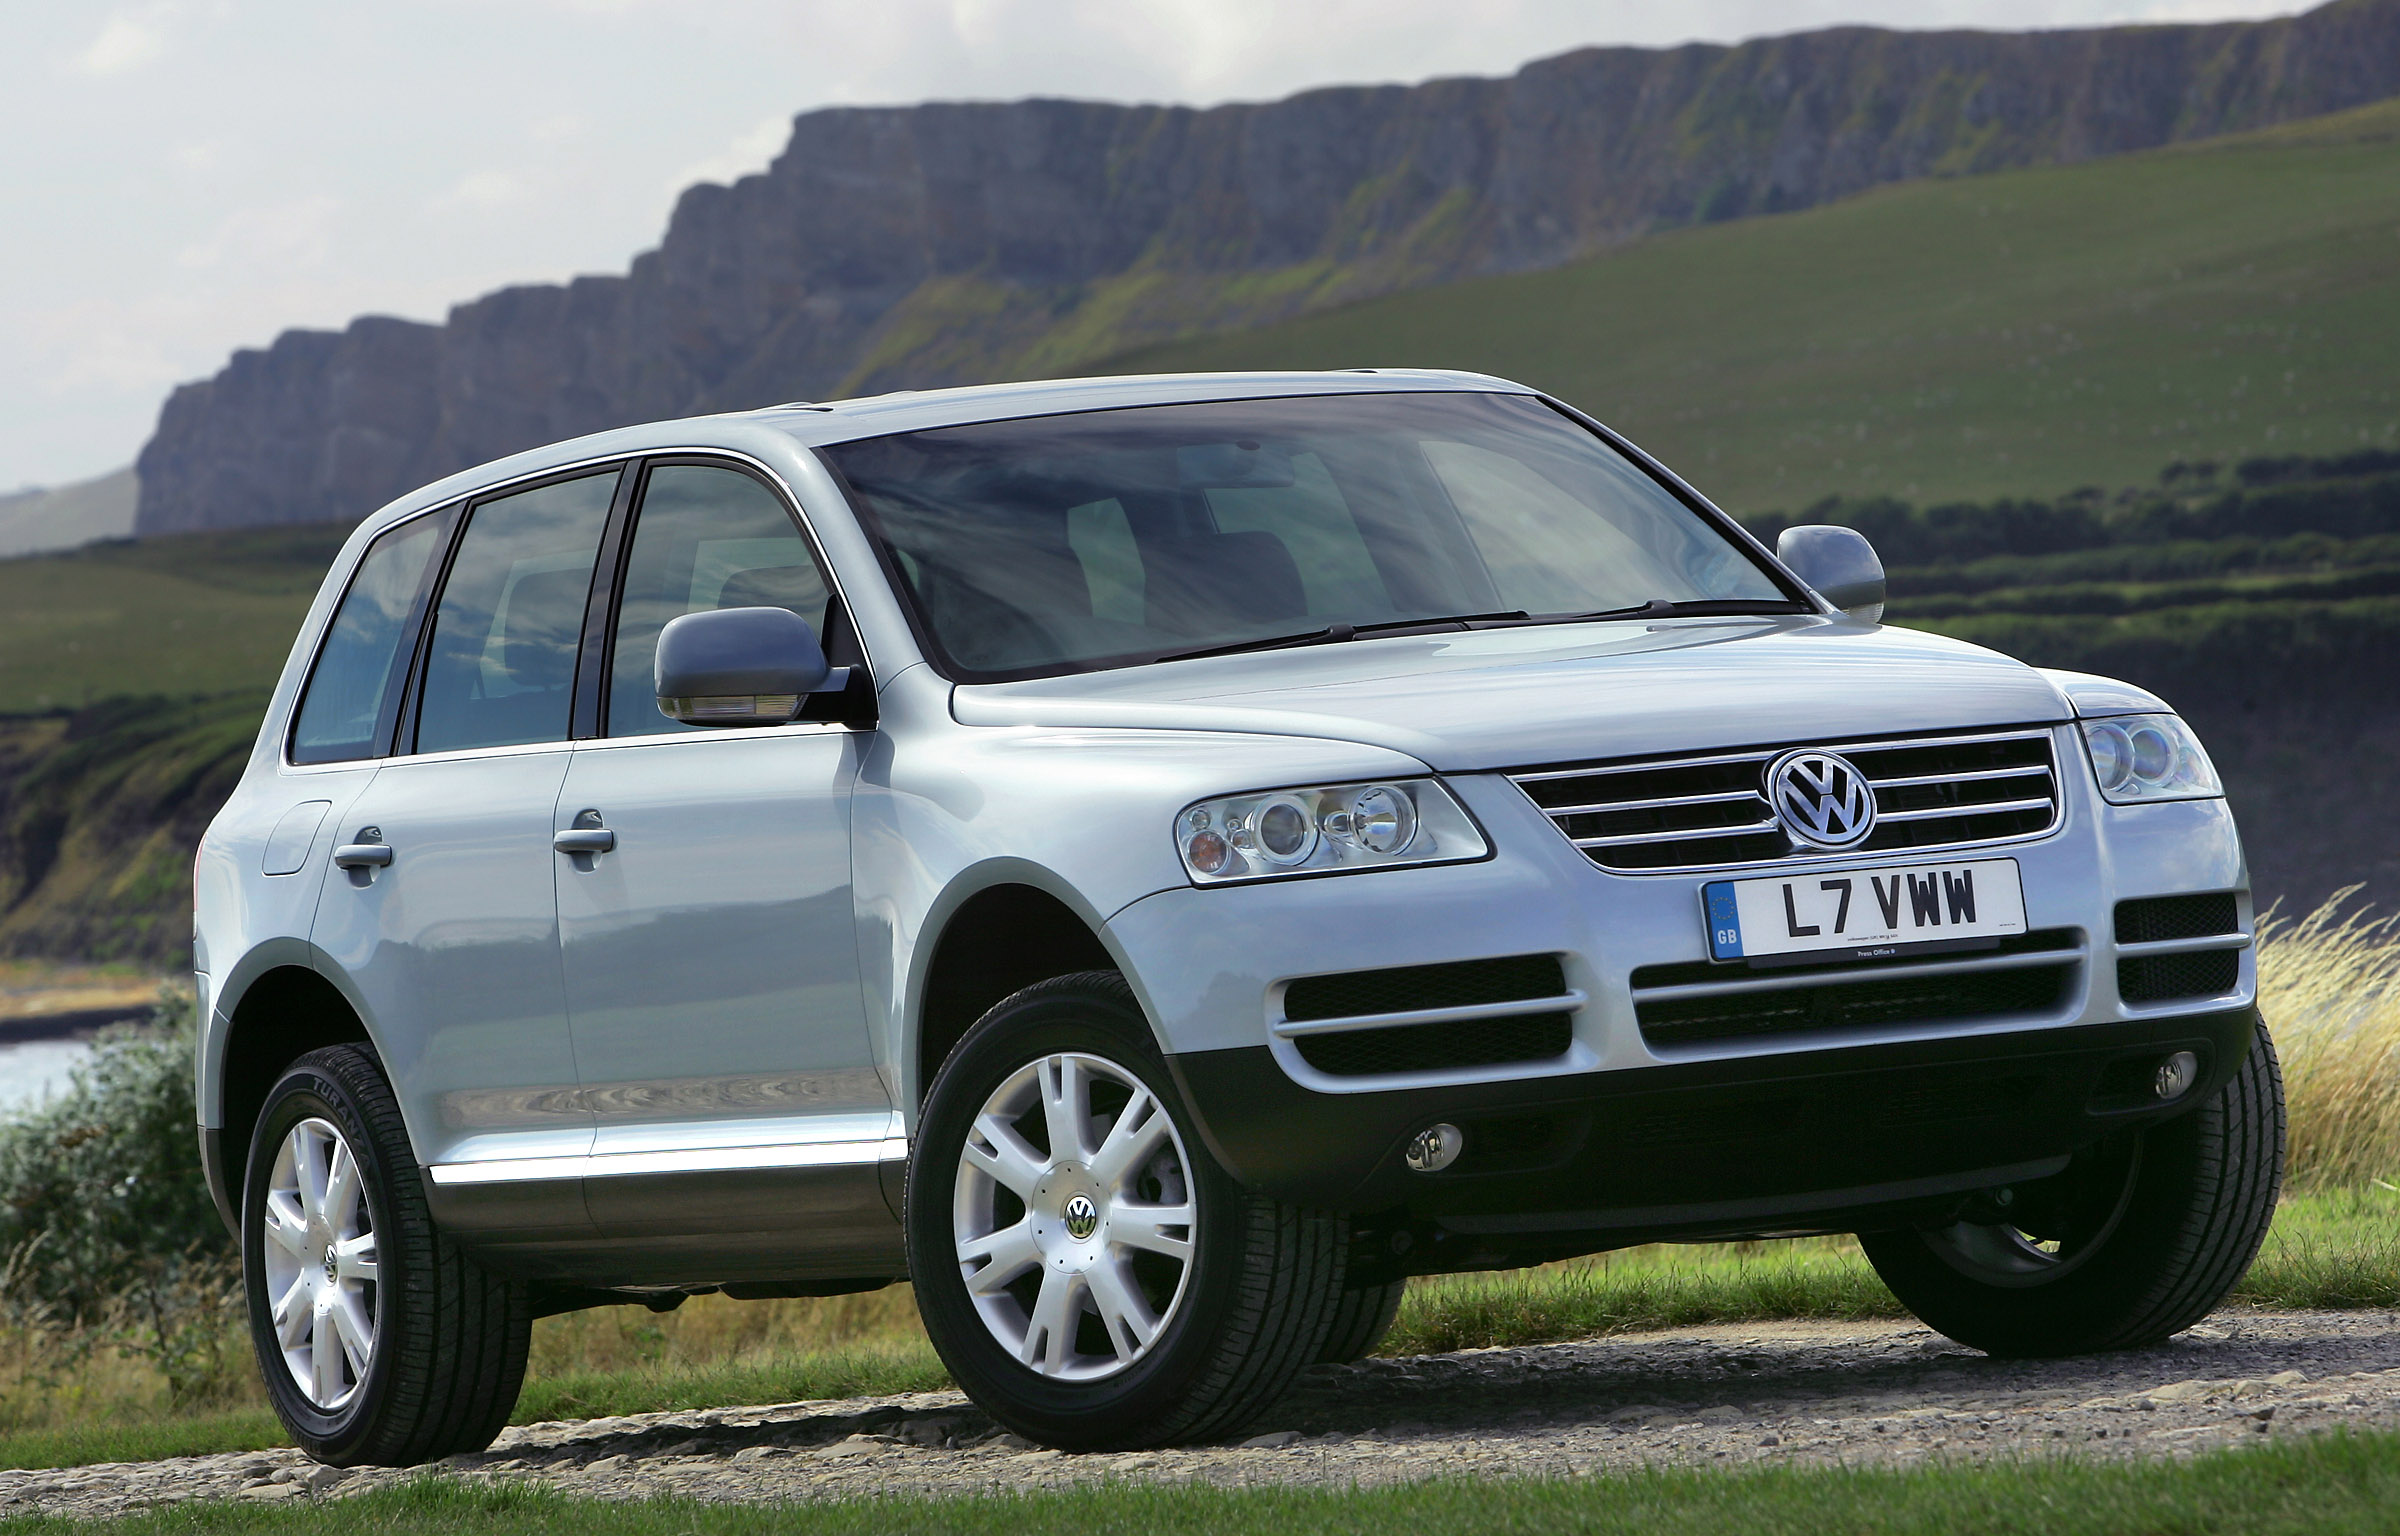 2005 volkswagen touareg suv consumer reviews autos post. Black Bedroom Furniture Sets. Home Design Ideas